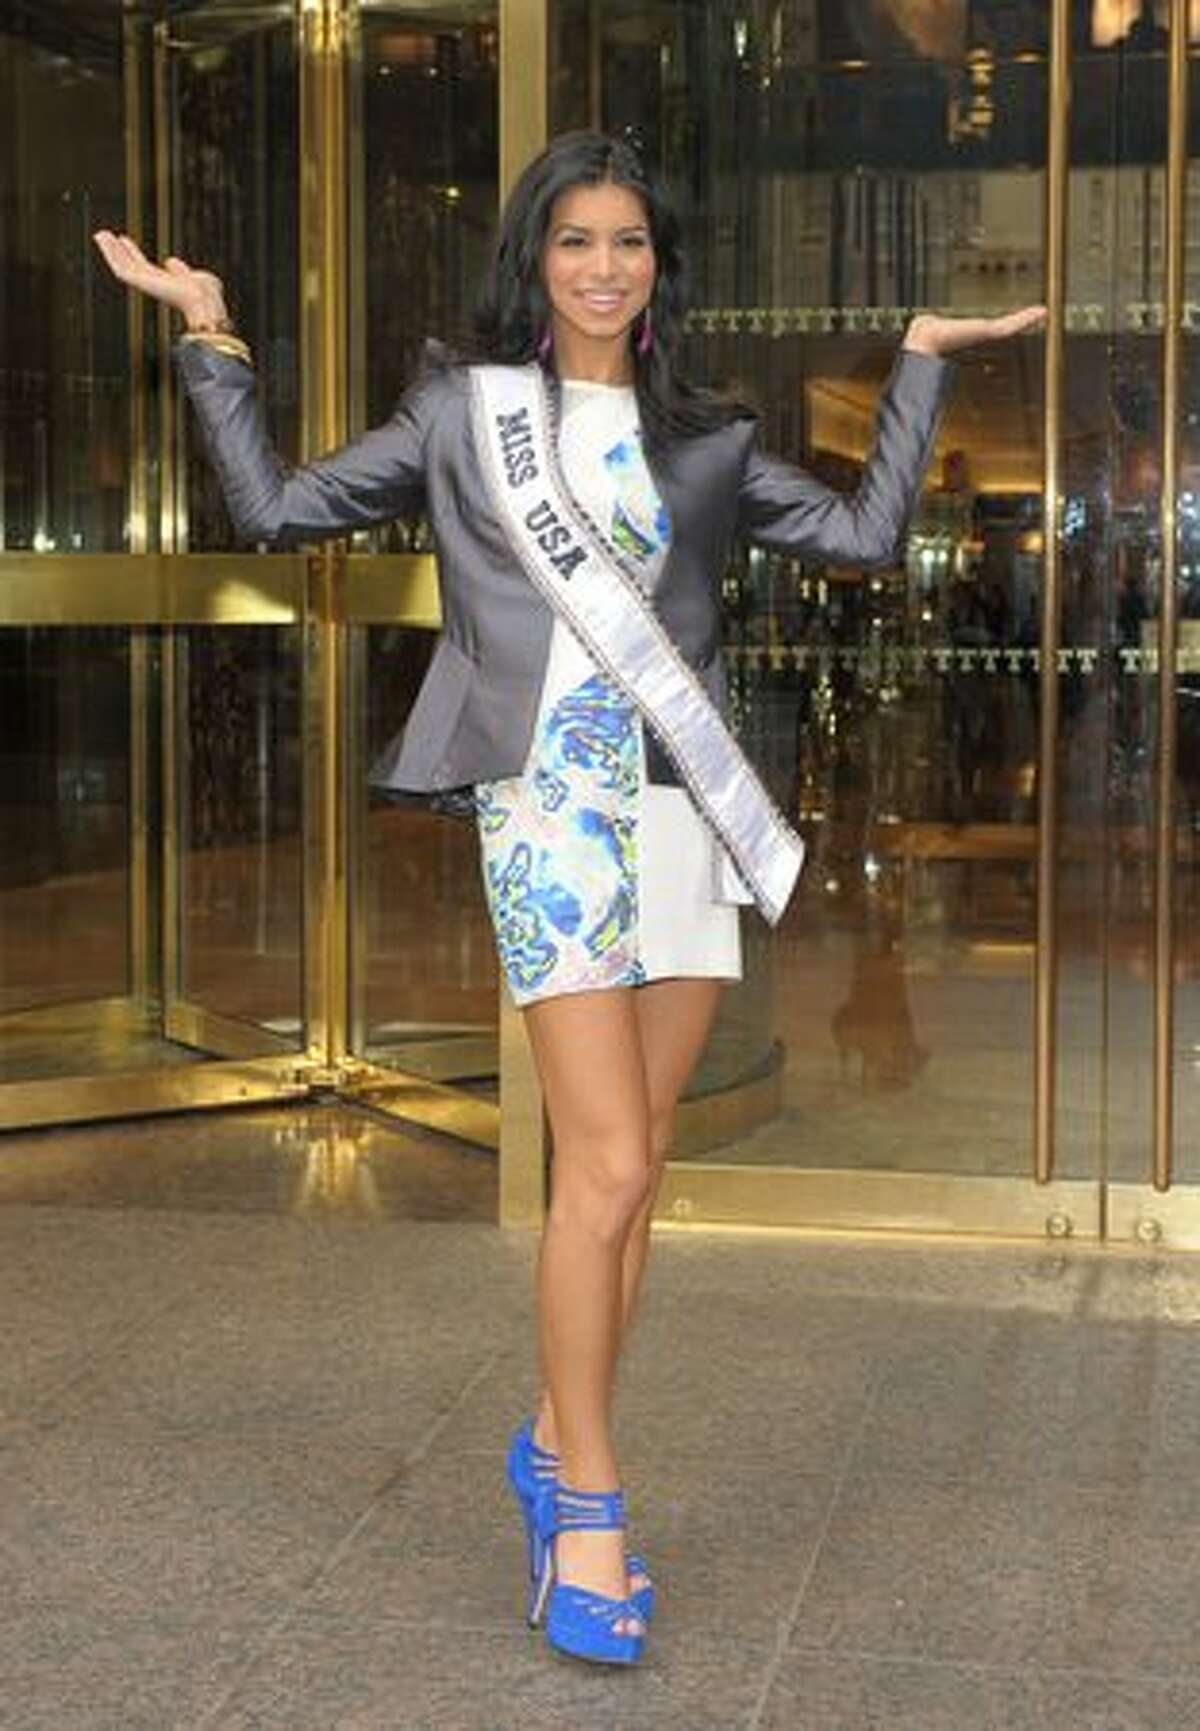 Miss USA 2010 Rima Fakih visits Trump Tower in New York, where she will share a penthouse with the reigning Miss Universe and Miss Teen USA, on May 20.